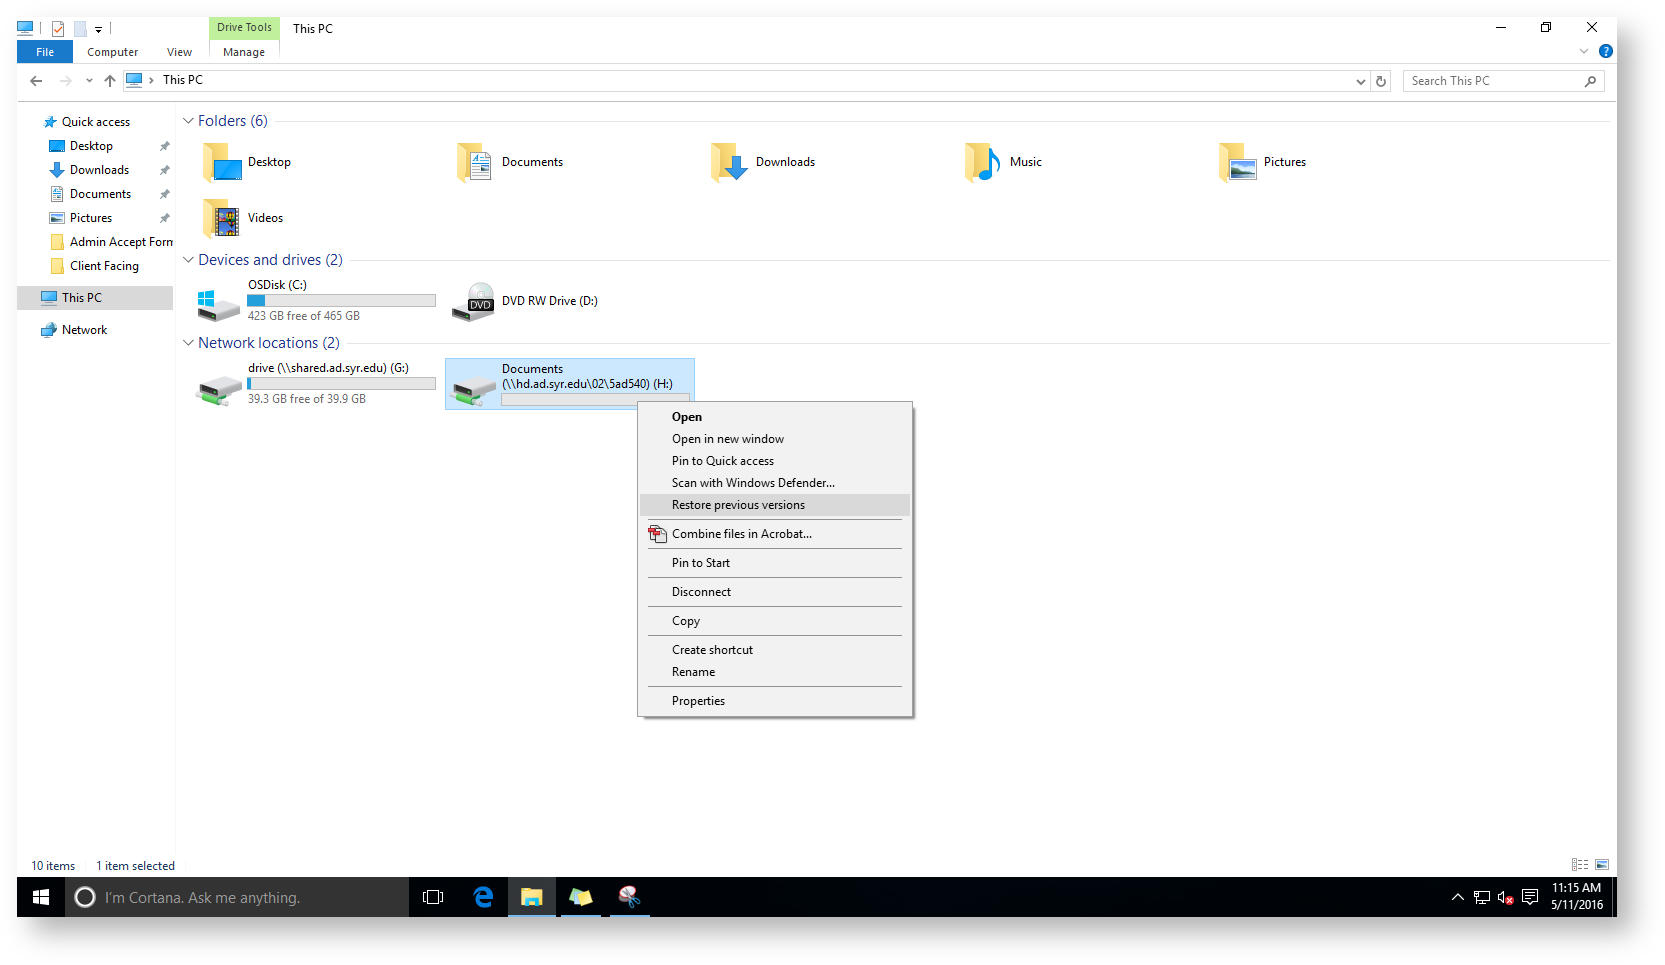 File explorer window